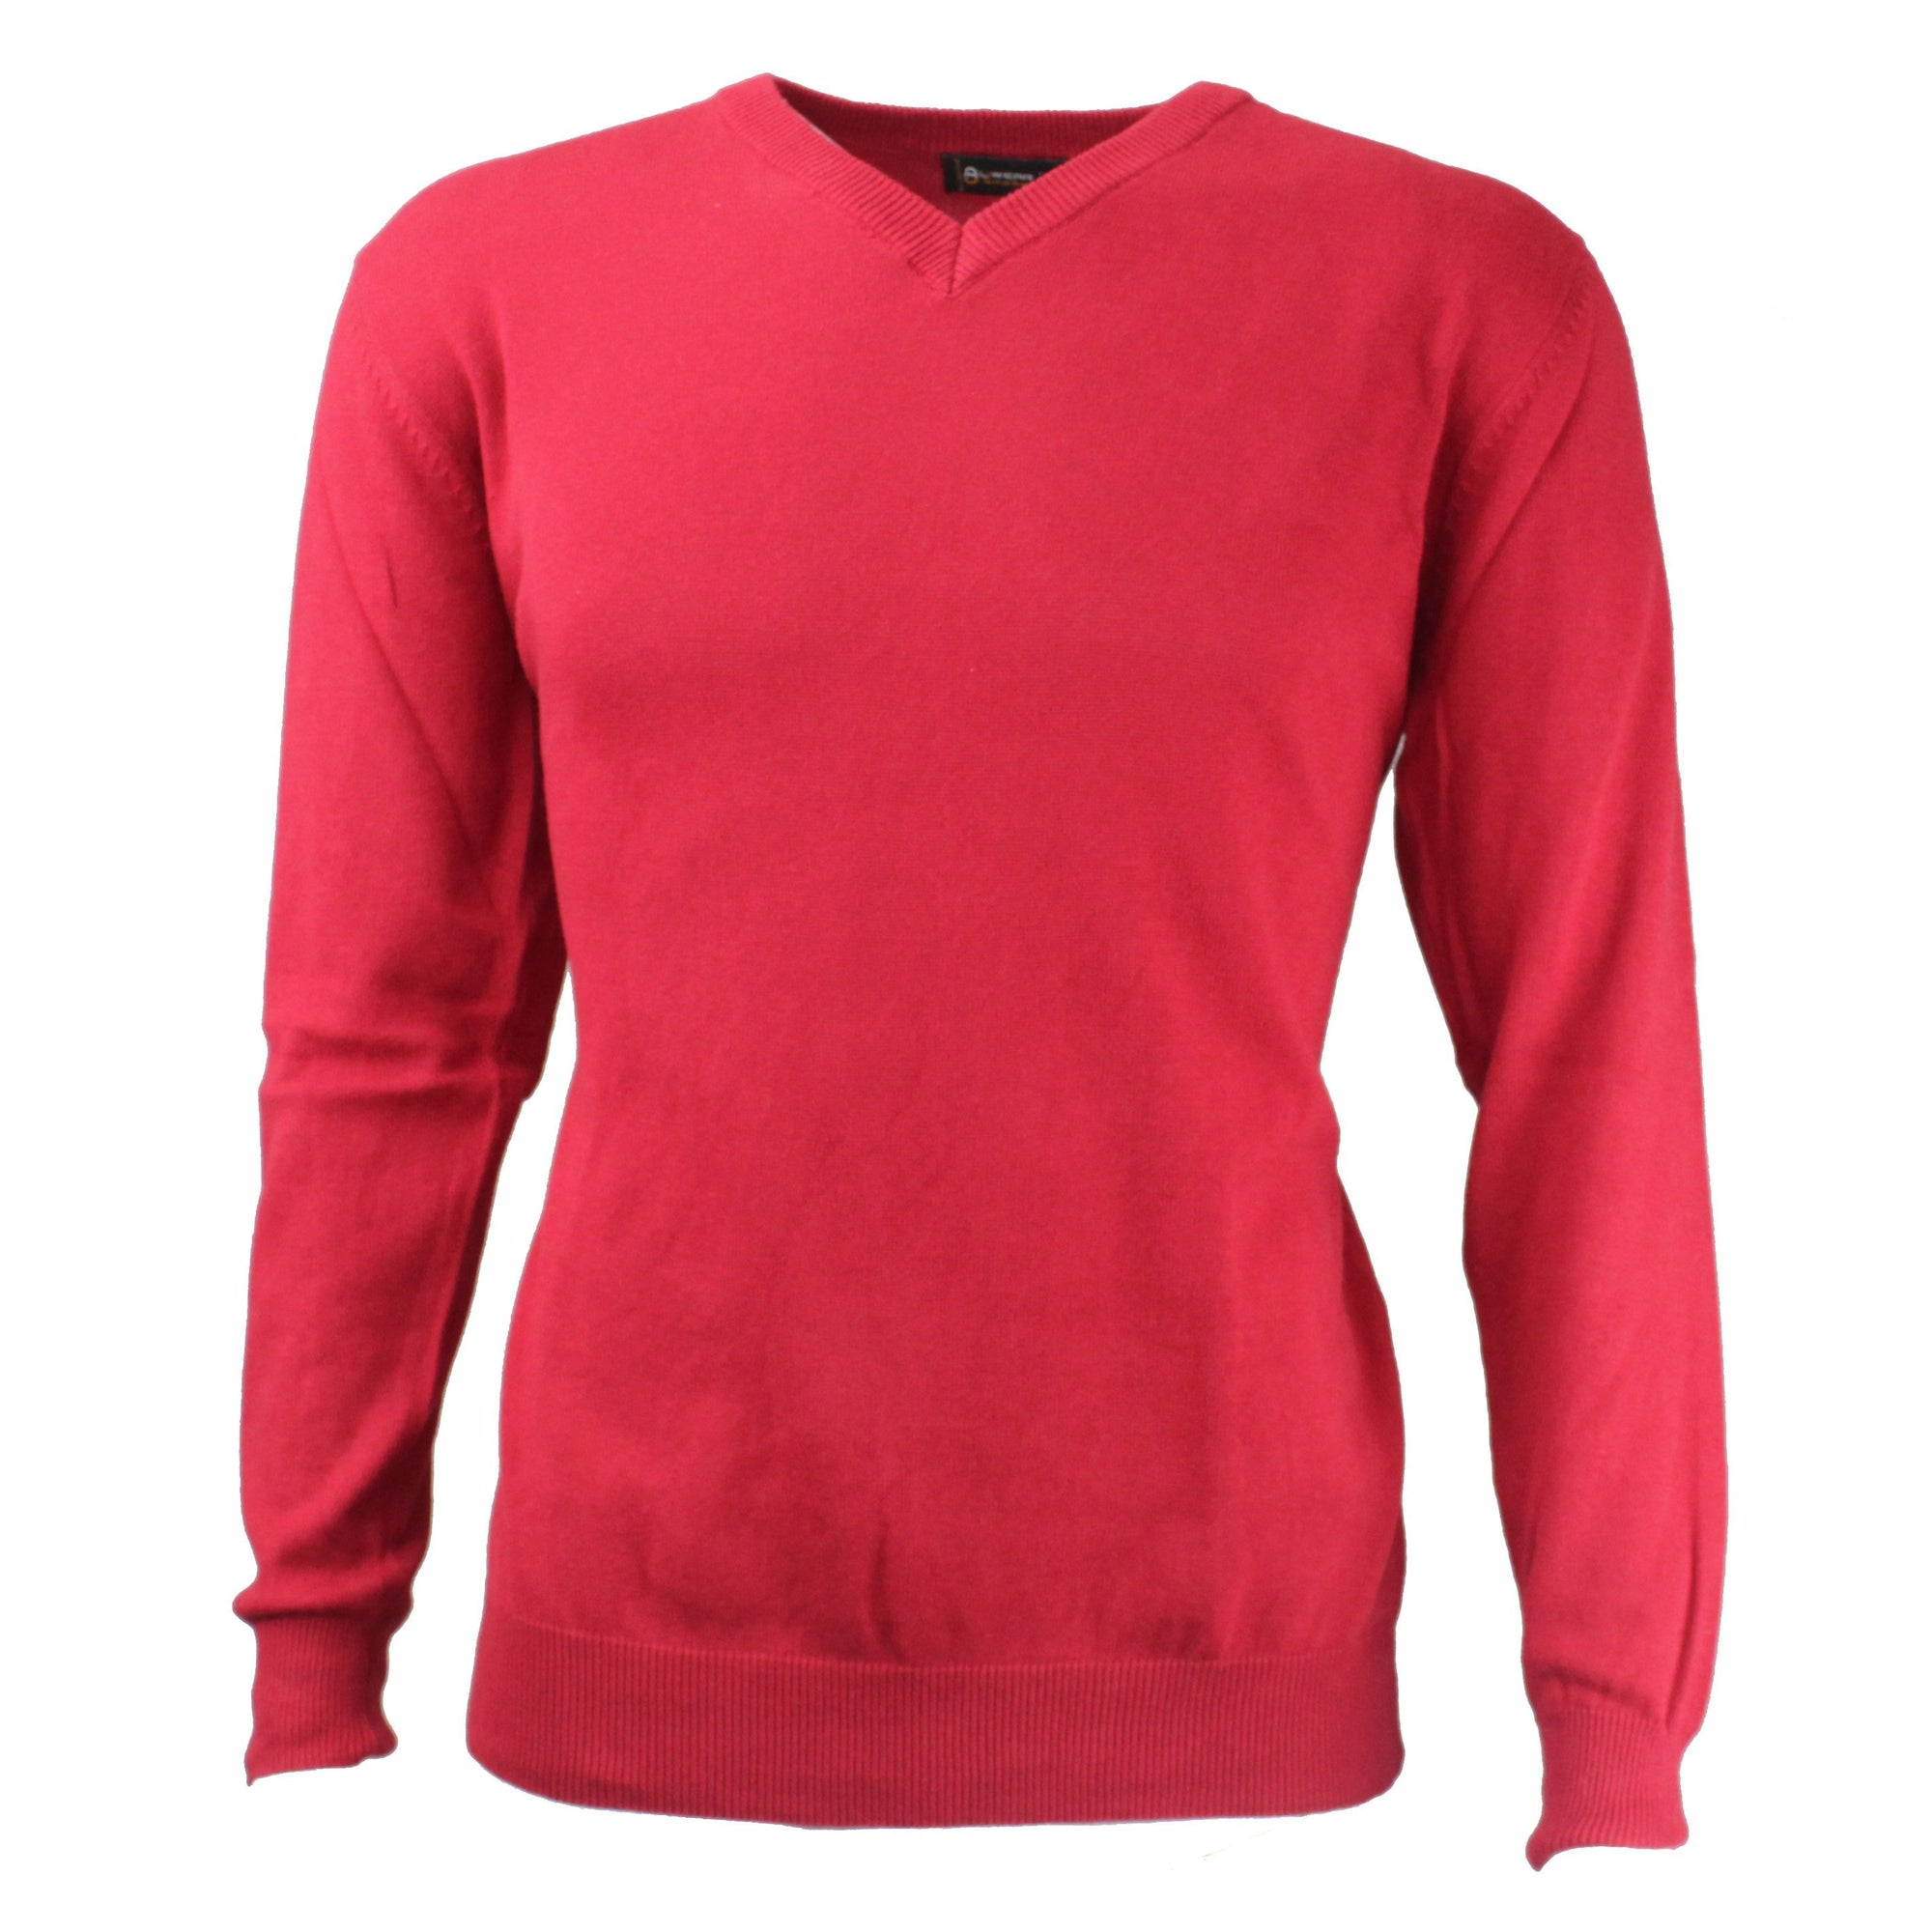 Druids Golf - Cotton V Neck Sweater (Burgandy)